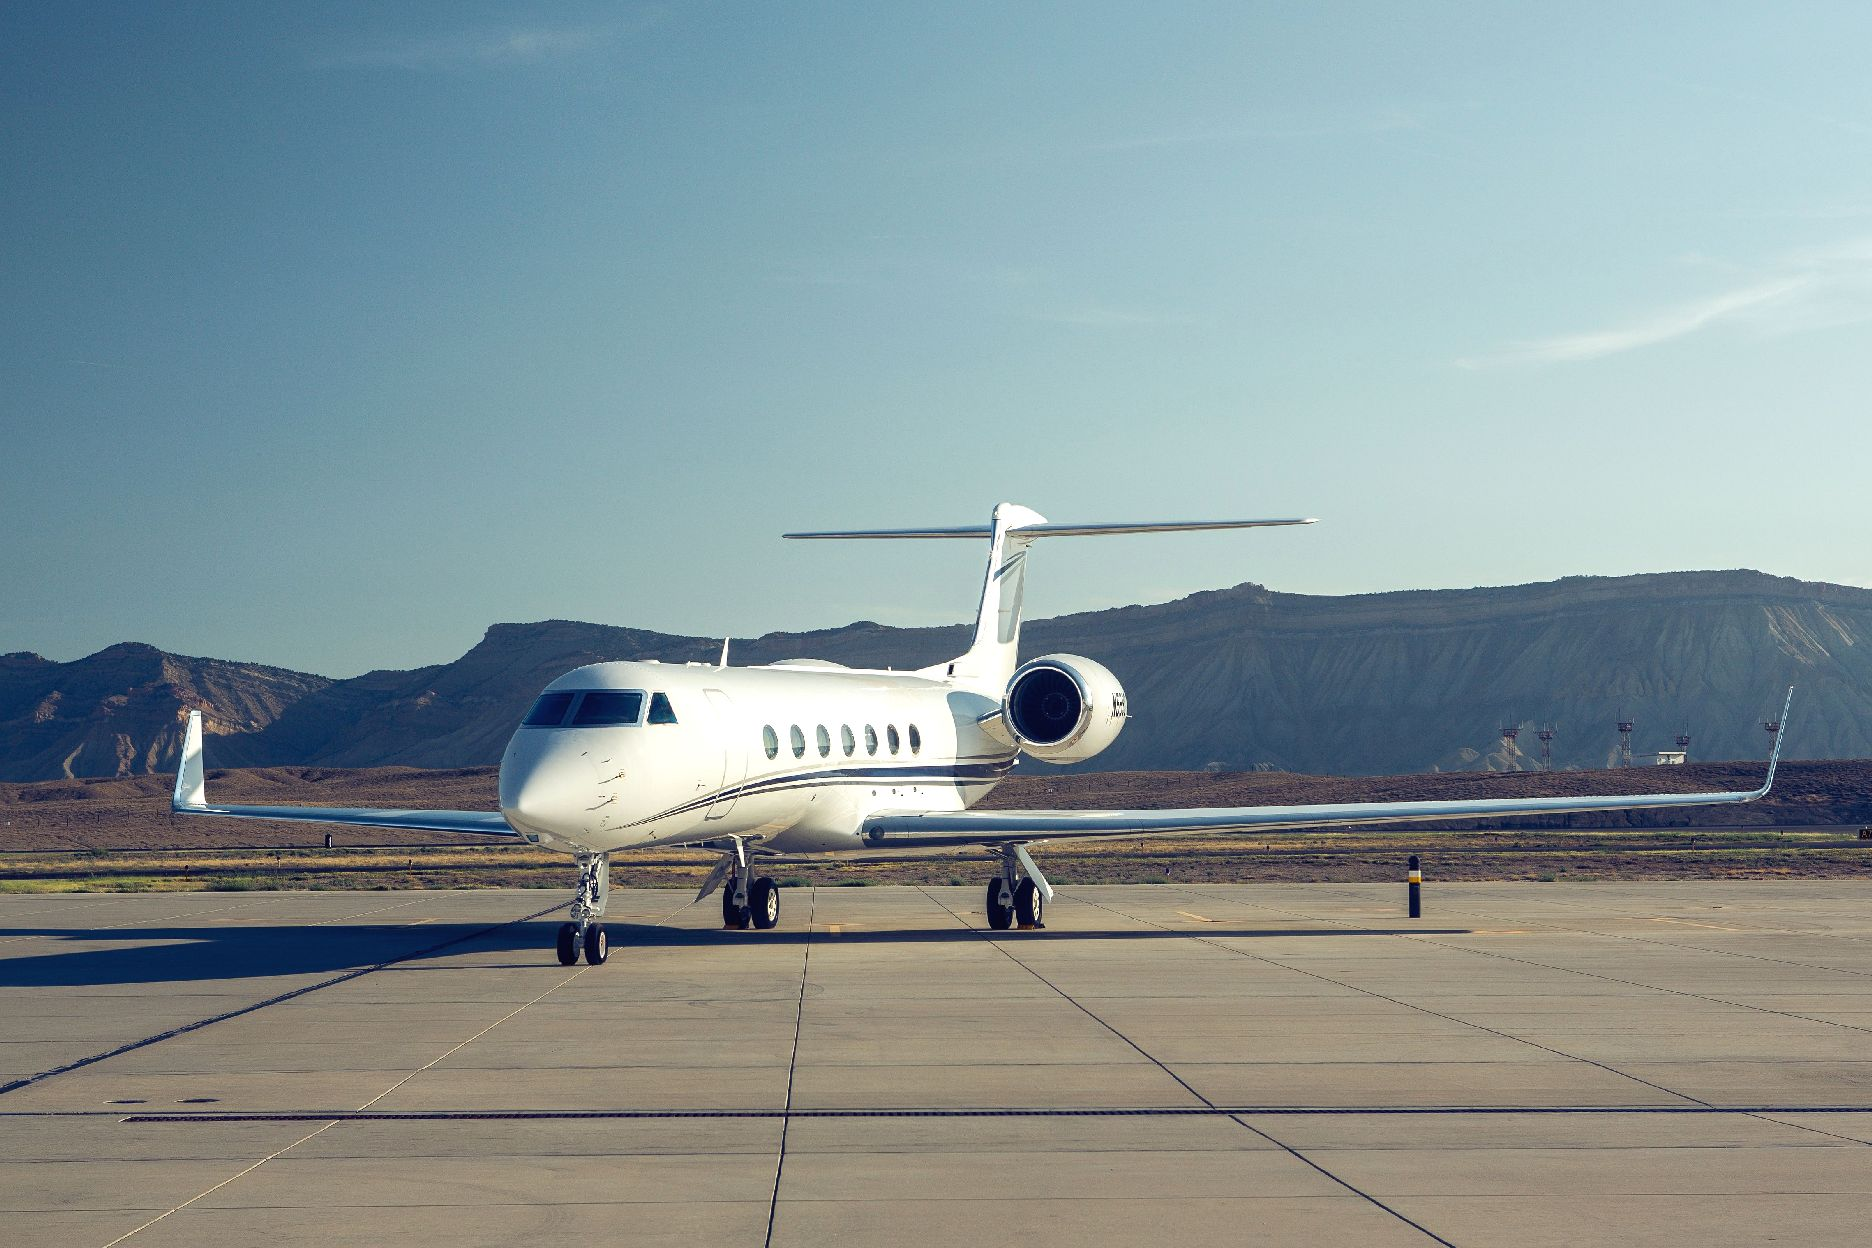 G550 For Sale >> Gulfstream G550 for Sale - Globalair.com